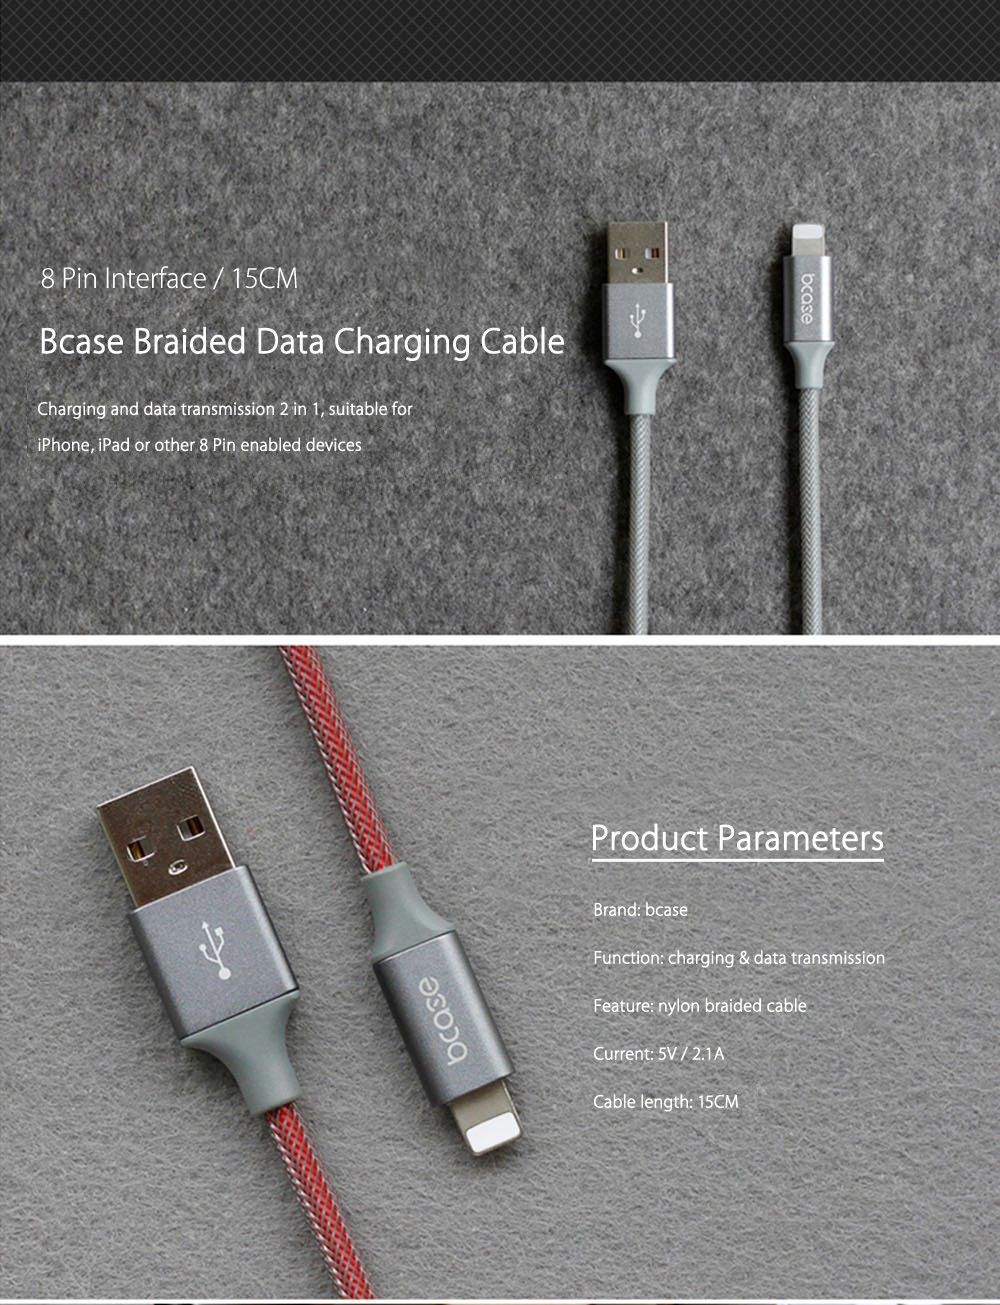 Bcase 15CM 8 Pin Nylon Braided Data Transfer Charging Cord